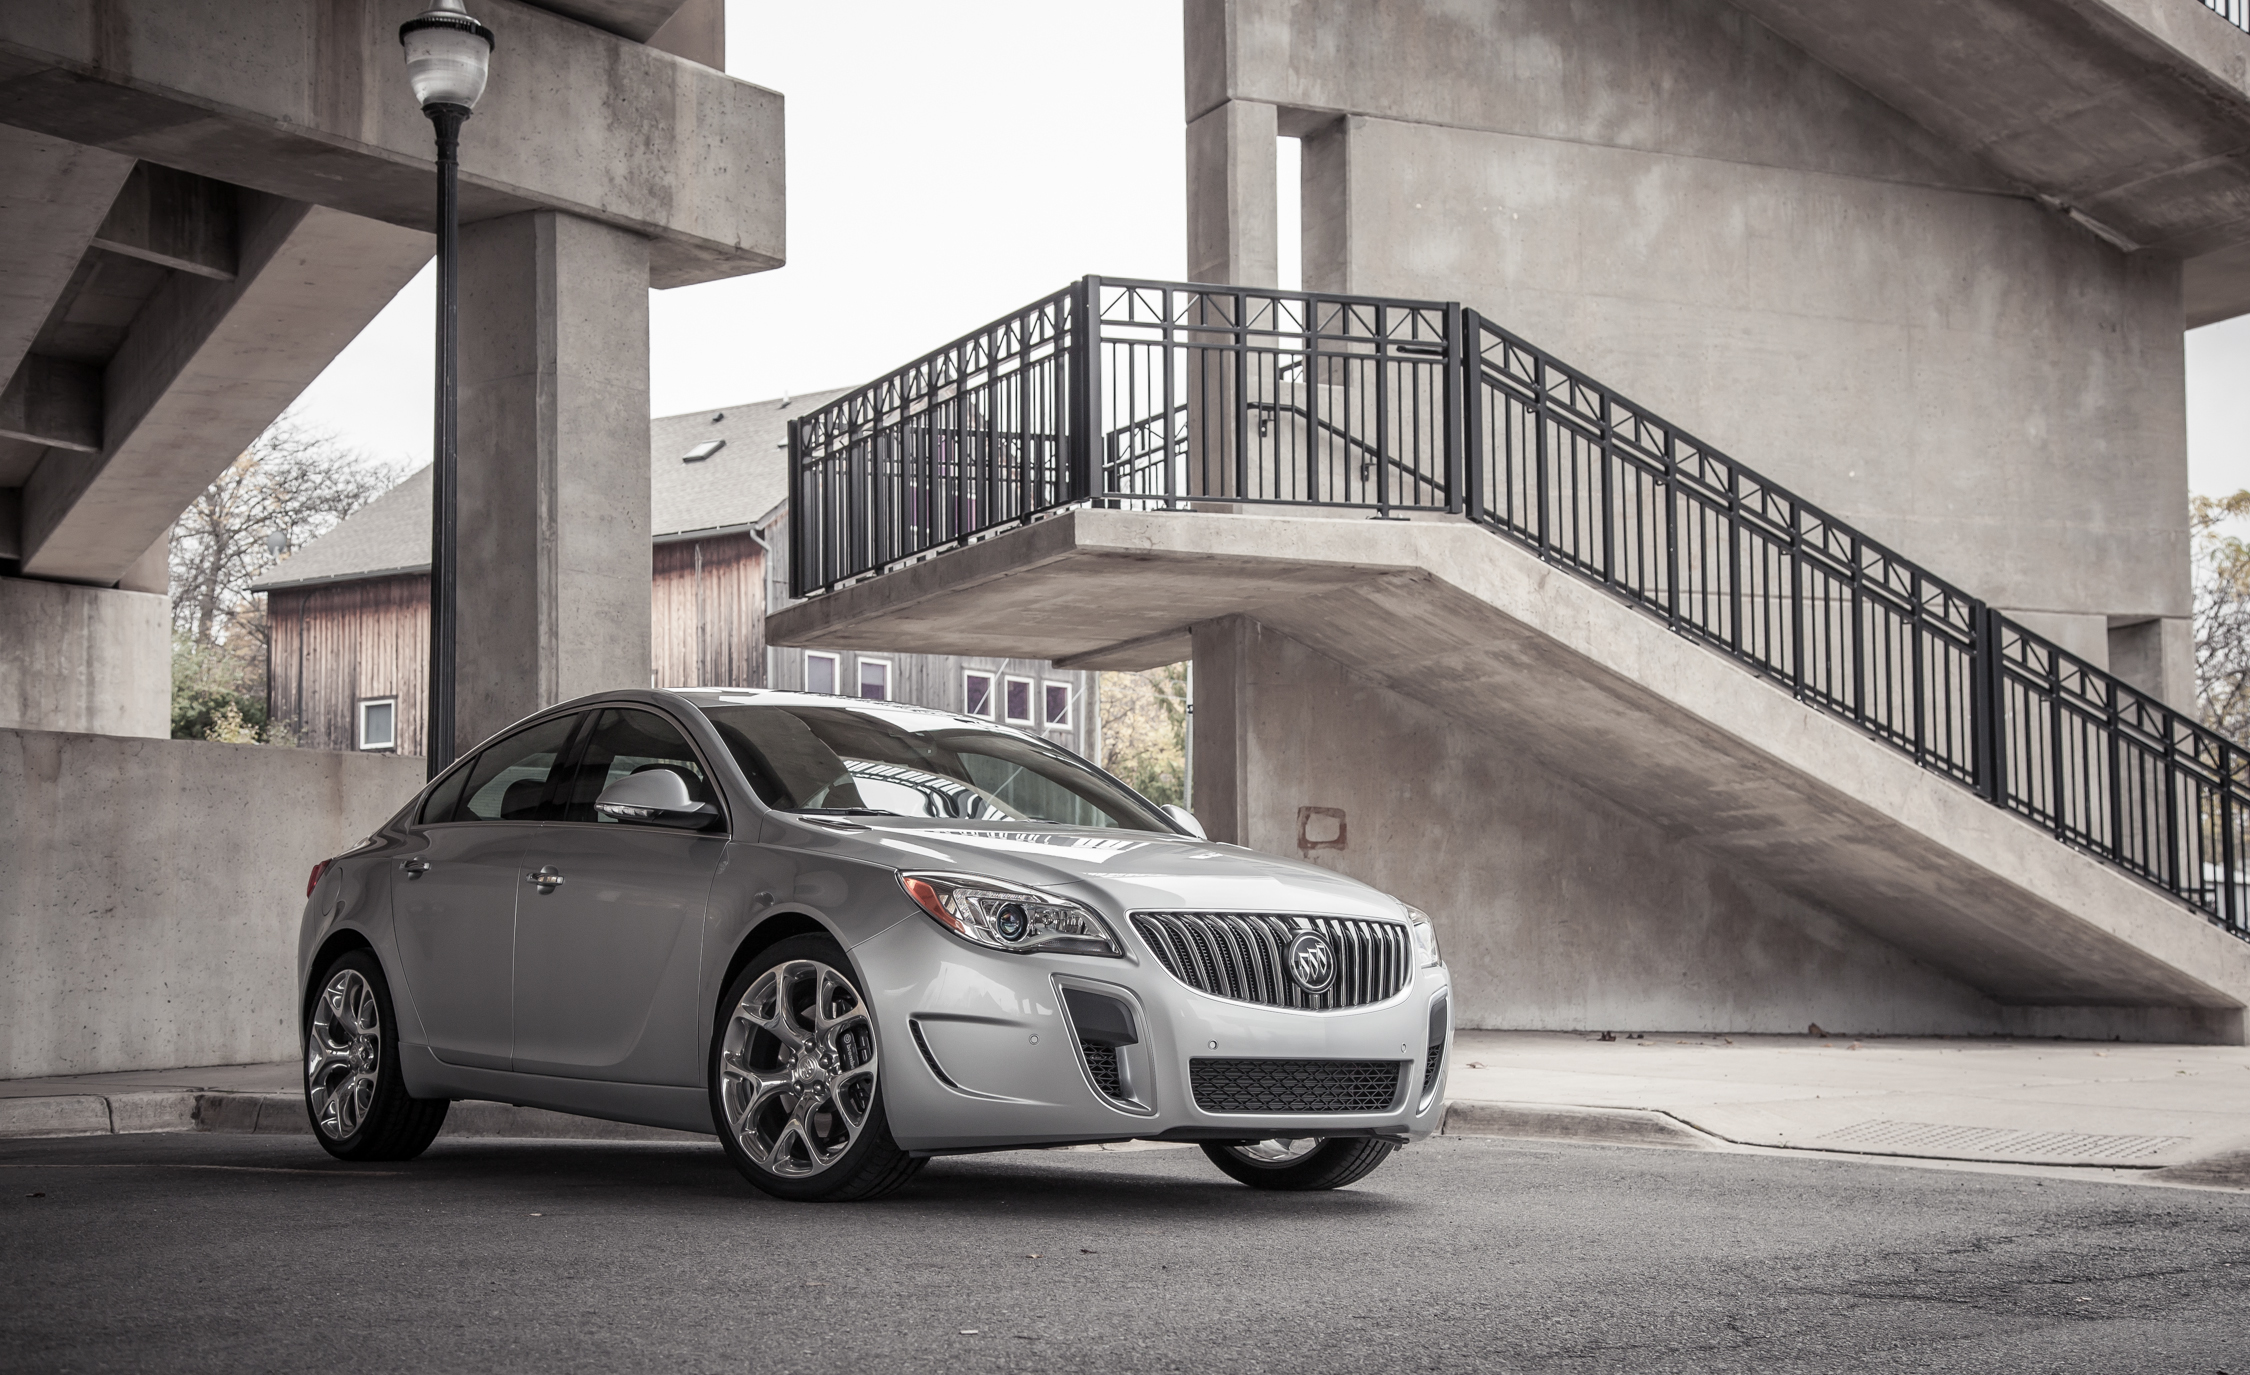 2014 Buick Regal GS (Photo 5 of 30)